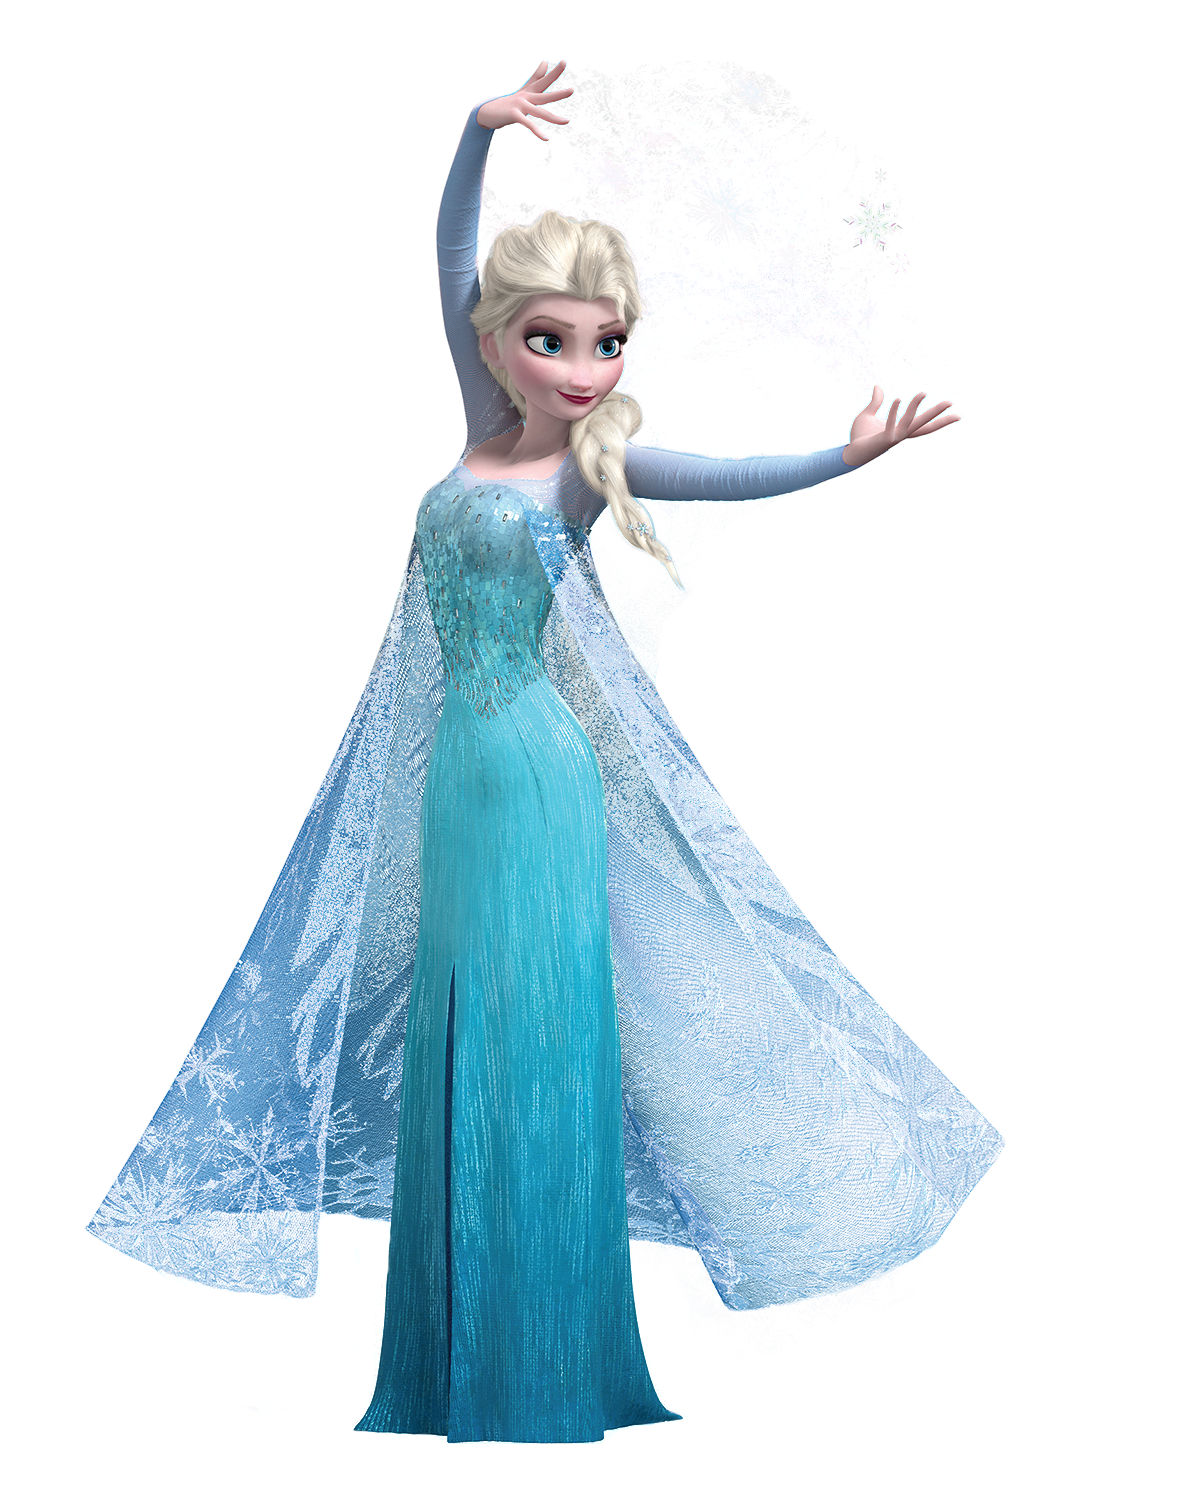 Elsa frozen png. Image render making snow